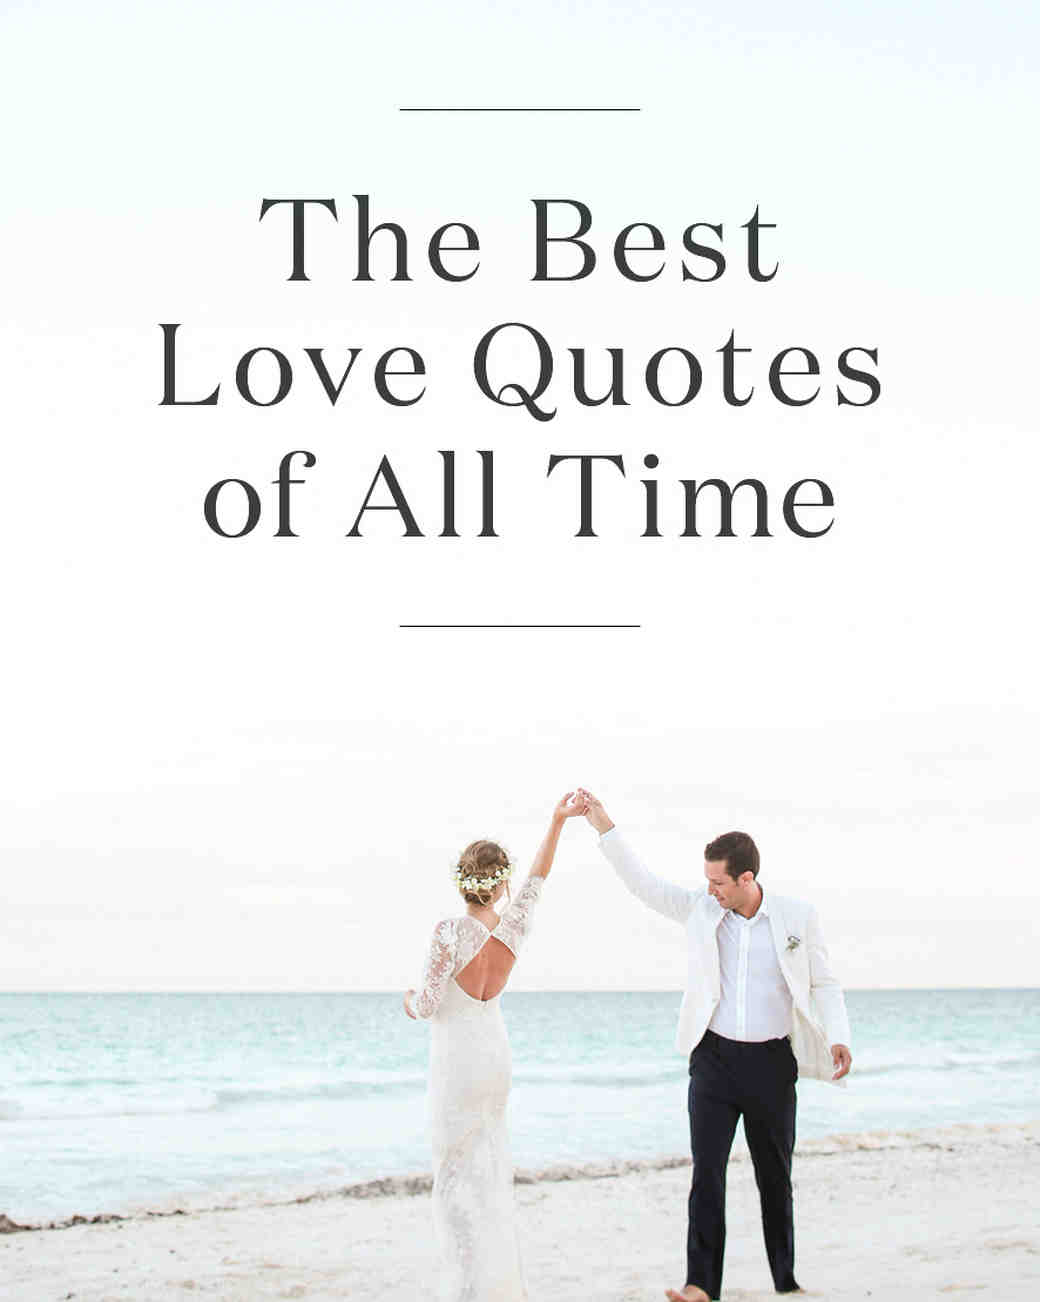 Wedding Love Quotes The 20 Best Love Quotes Of All Time  Martha Stewart Weddings